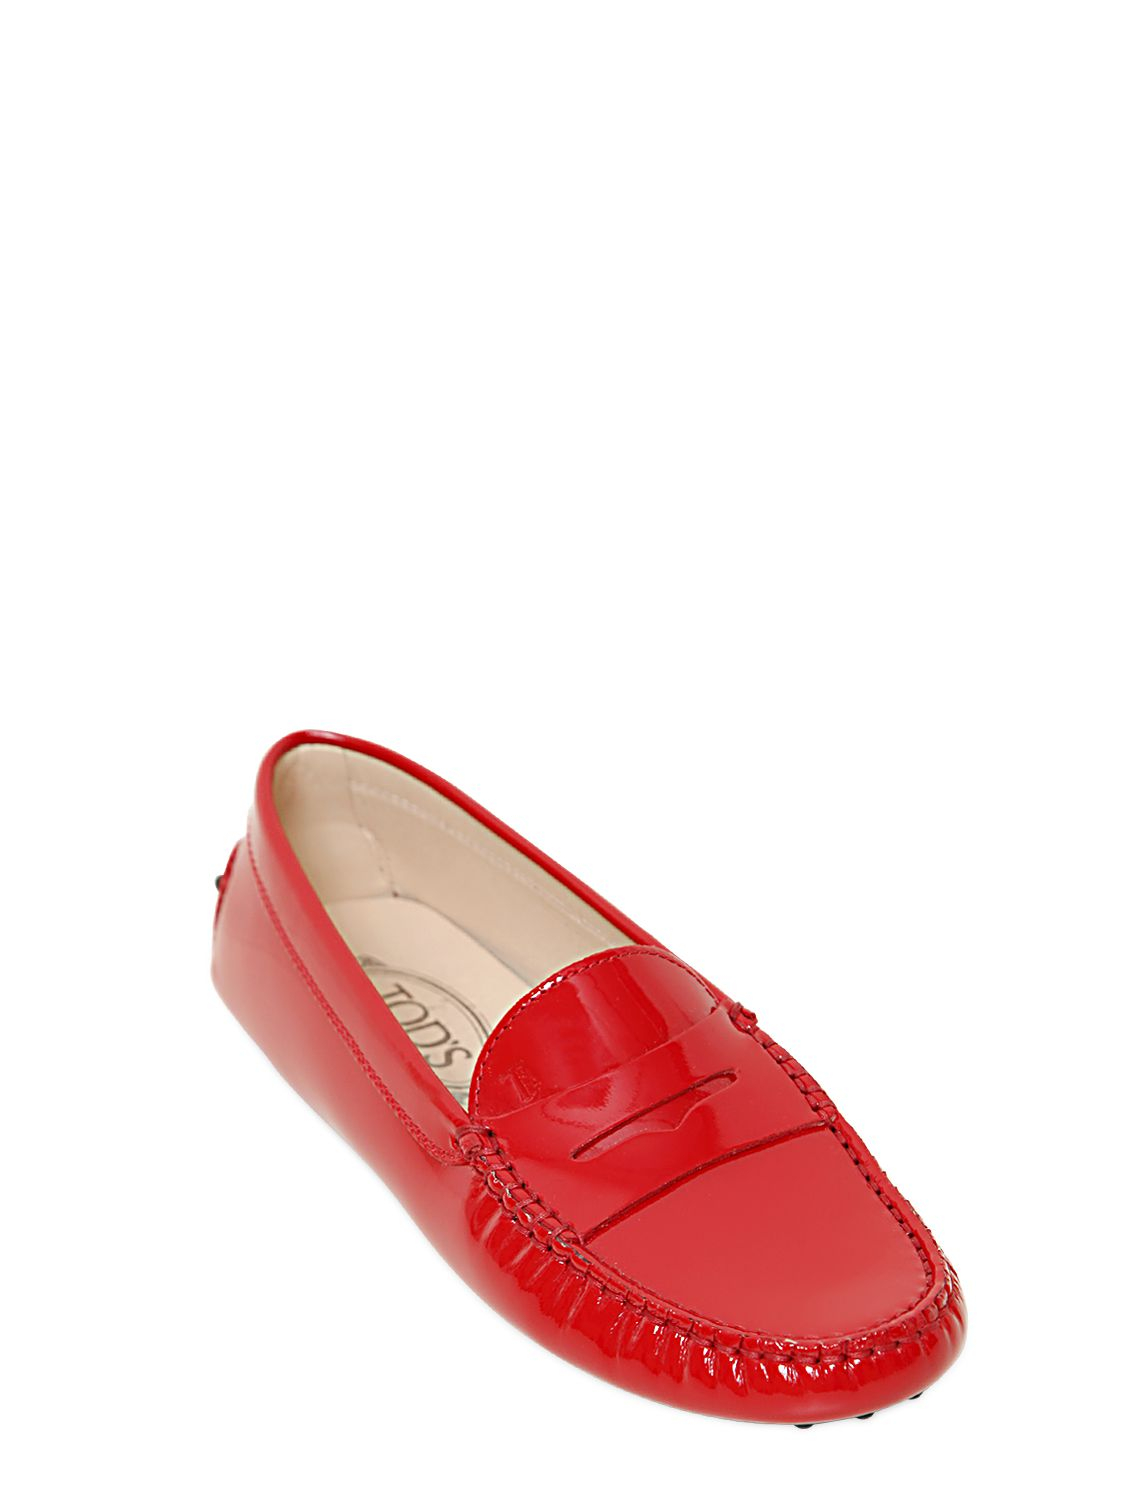 bde511bd3b2 Lyst - Tod s Patent Leather Gommino Loafers in Red